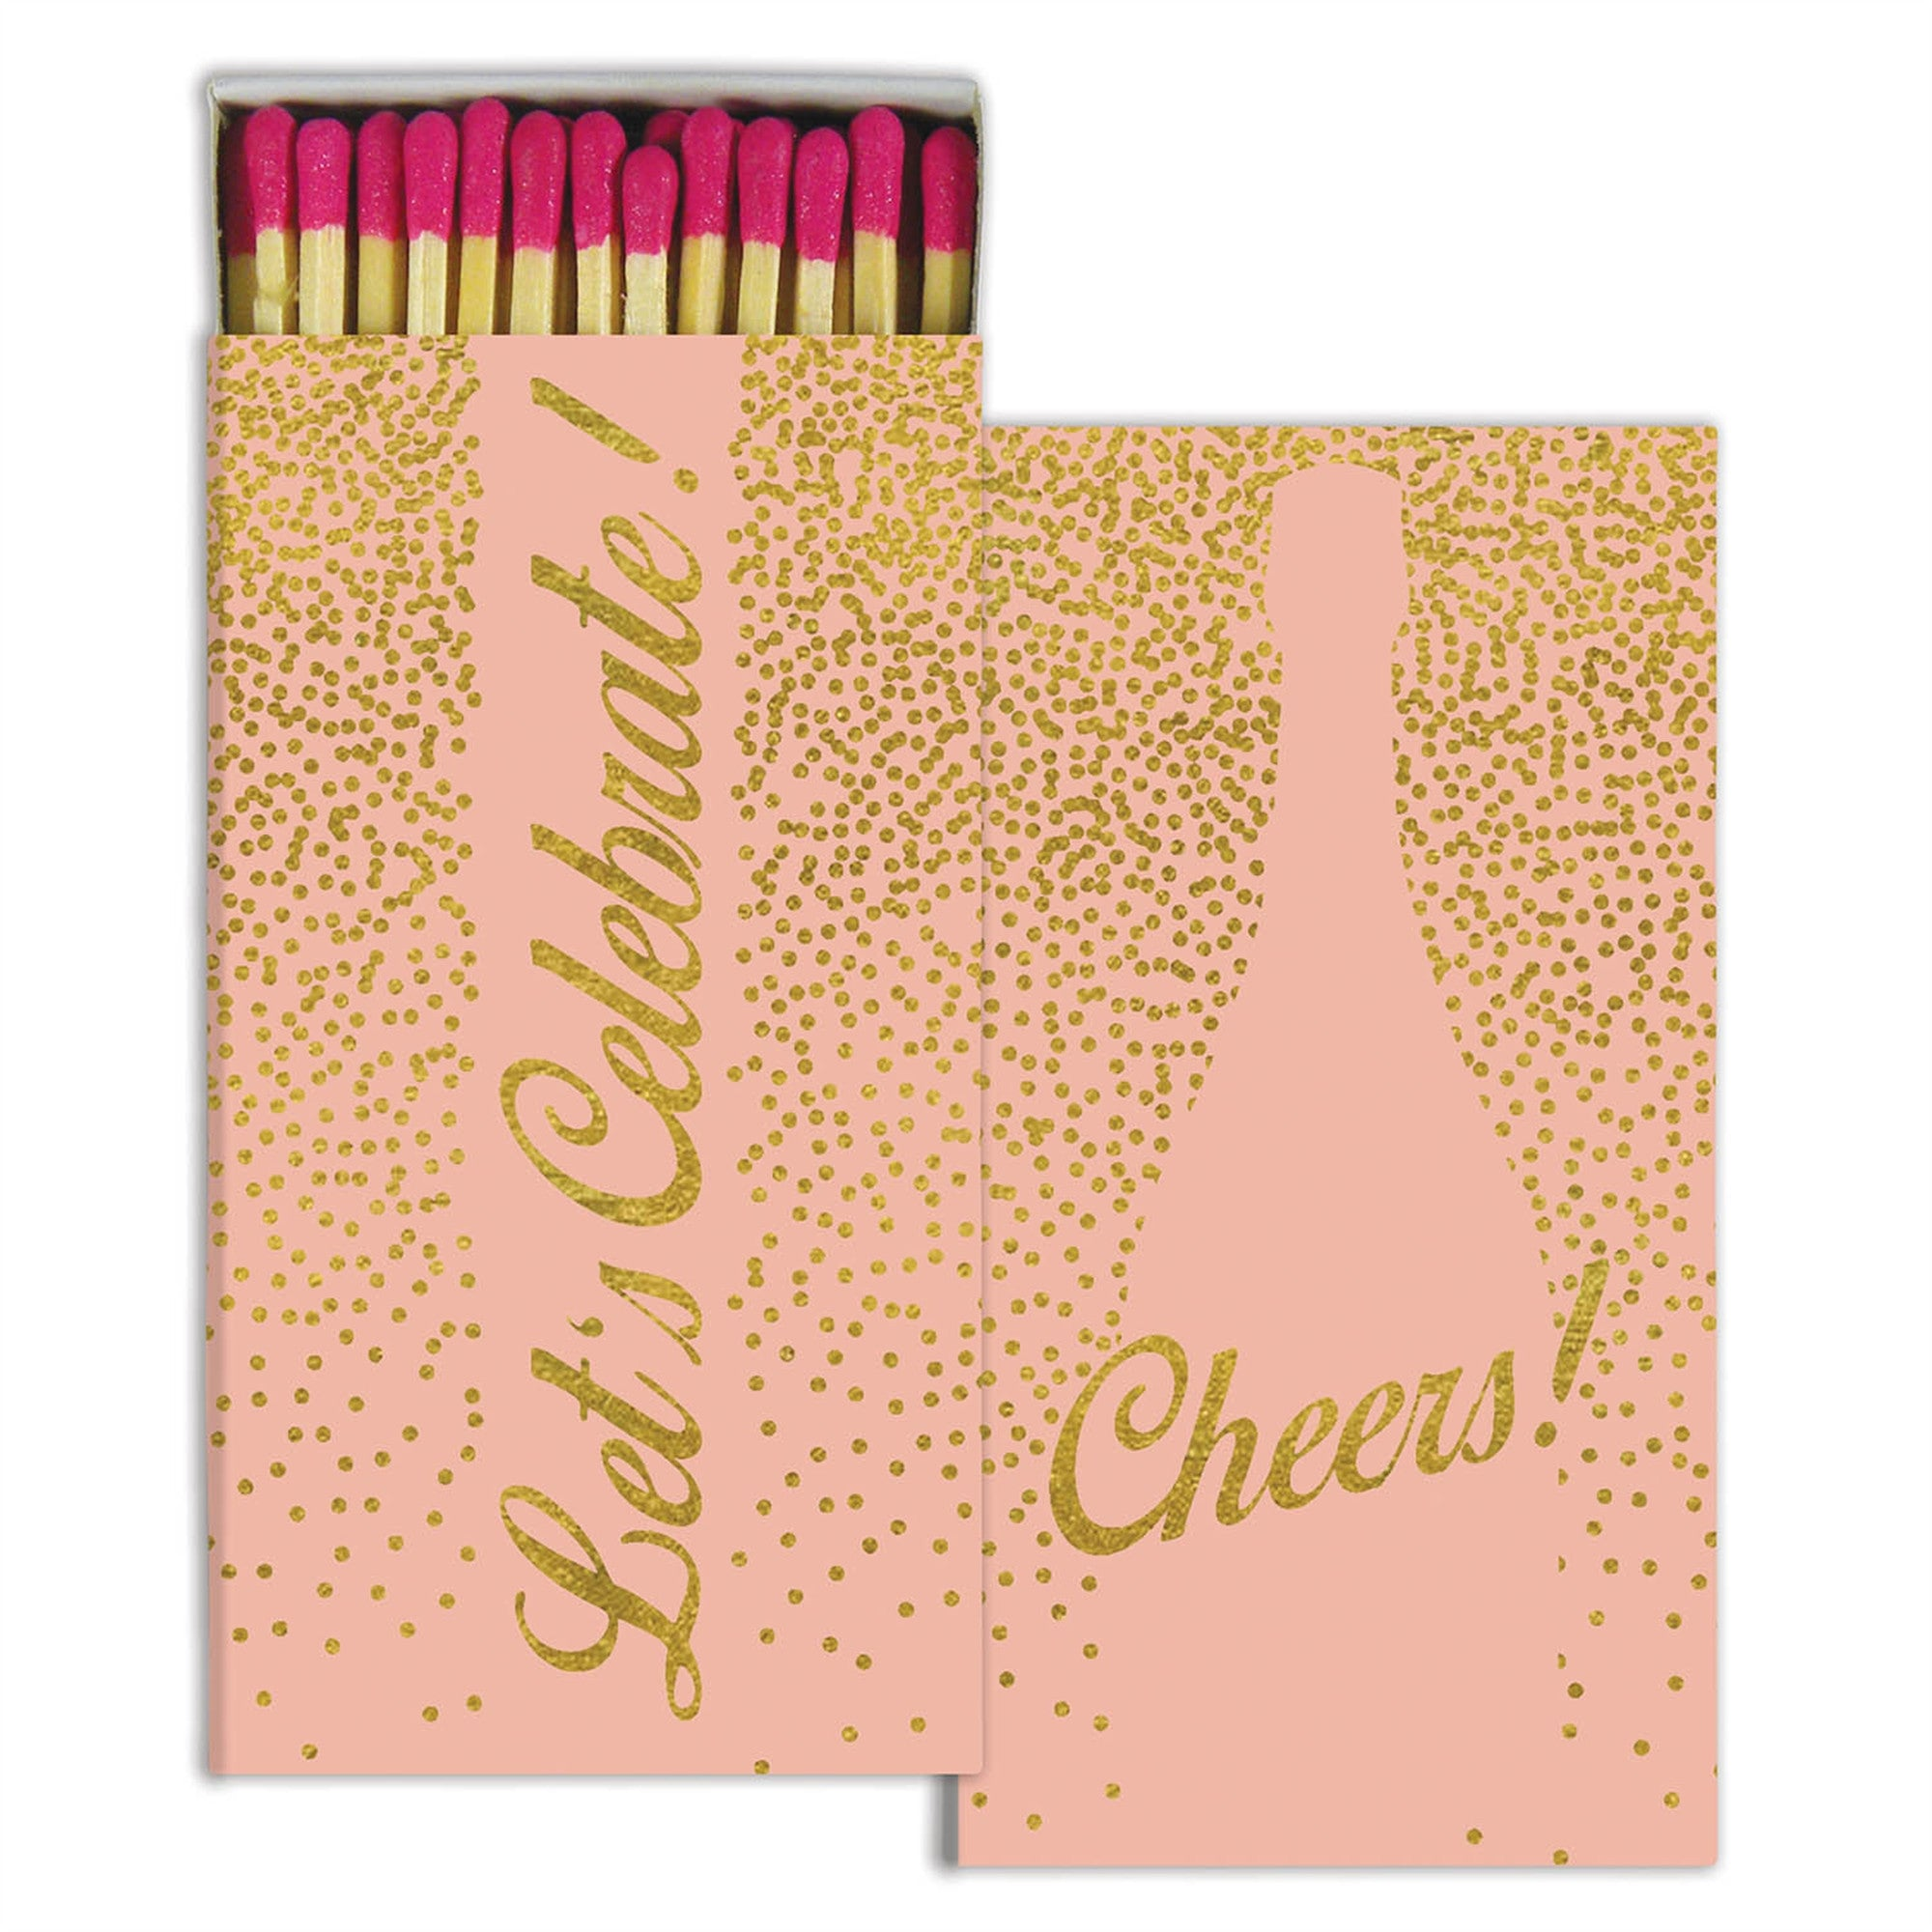 Matches - Cheers - Gold Foil